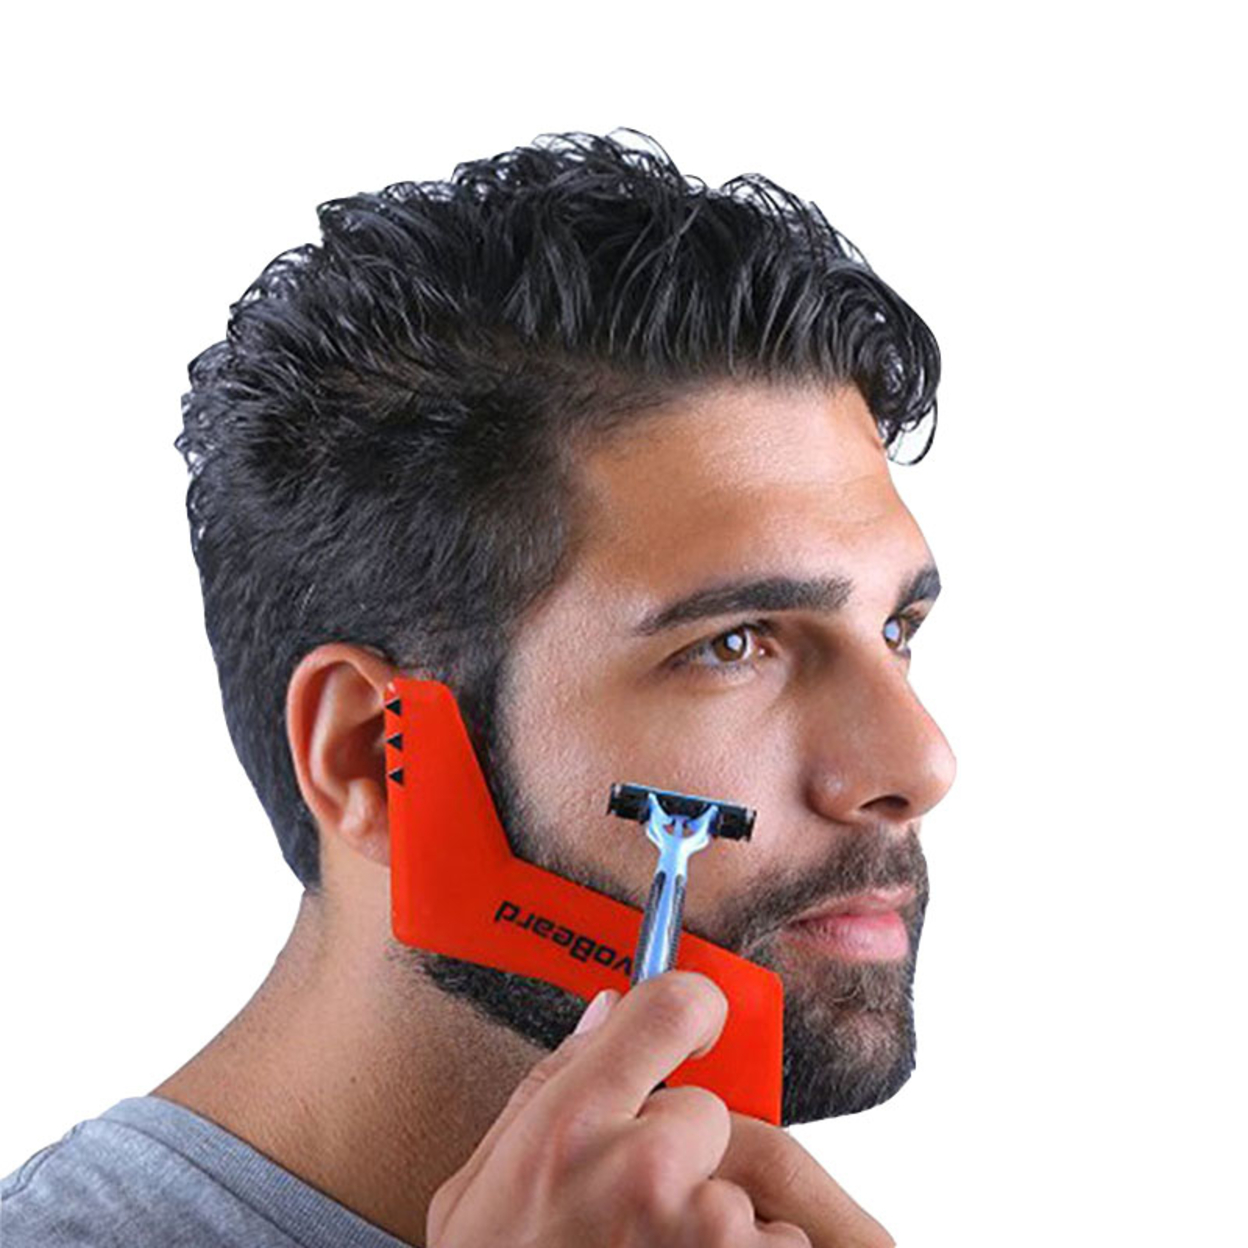 Beard Styling Comb Shaping Tool Mustache Face Irregular Shaving Gifts for Men 59c4be362a00e458ee098f54